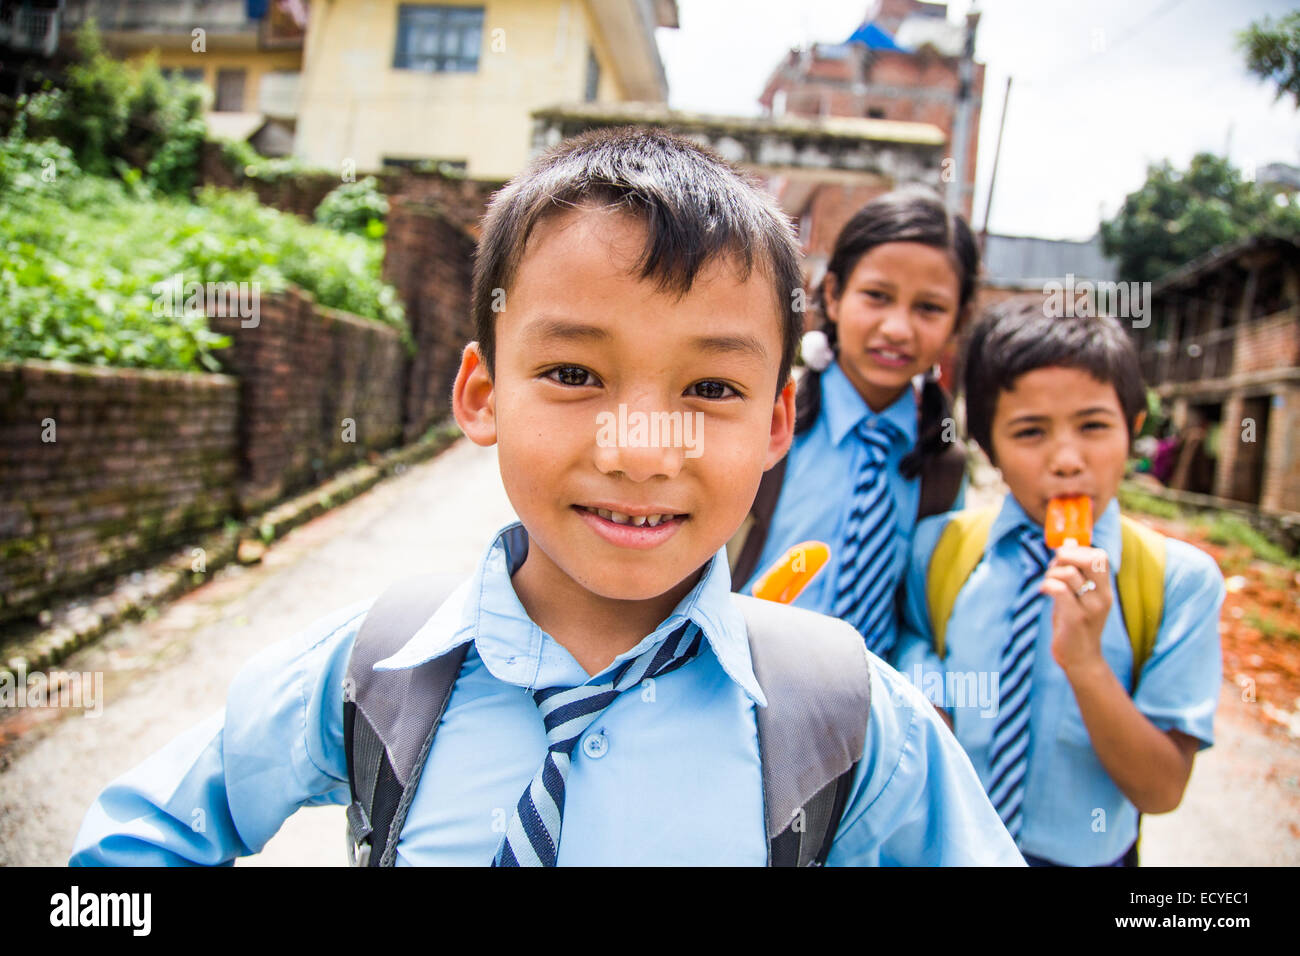 Boy in a school uniform, Kathmandu, Nepal - Stock Image